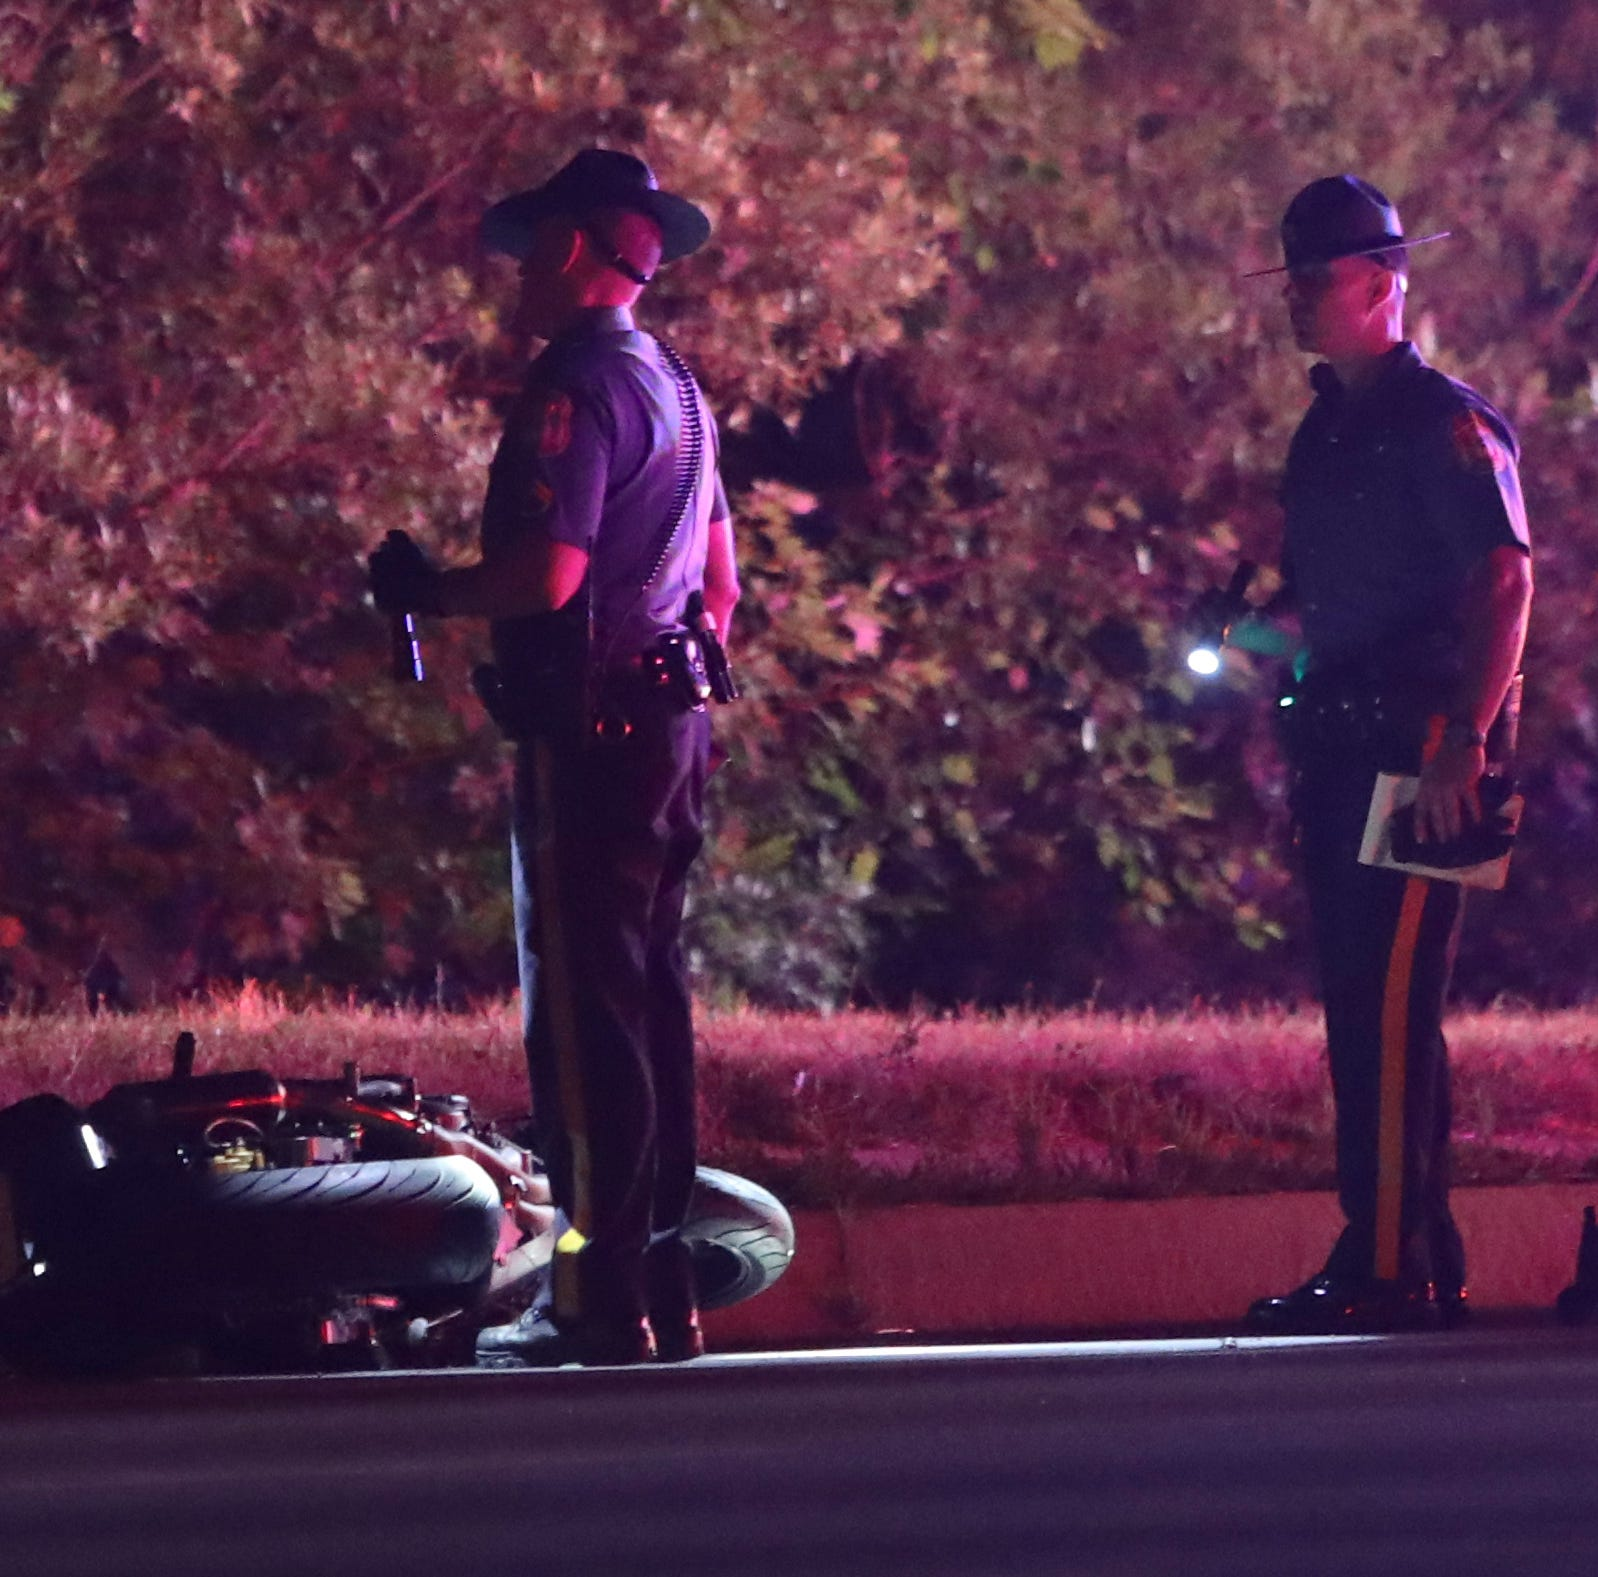 Early morning motorcycle crash near Concord High School causes serious injuries